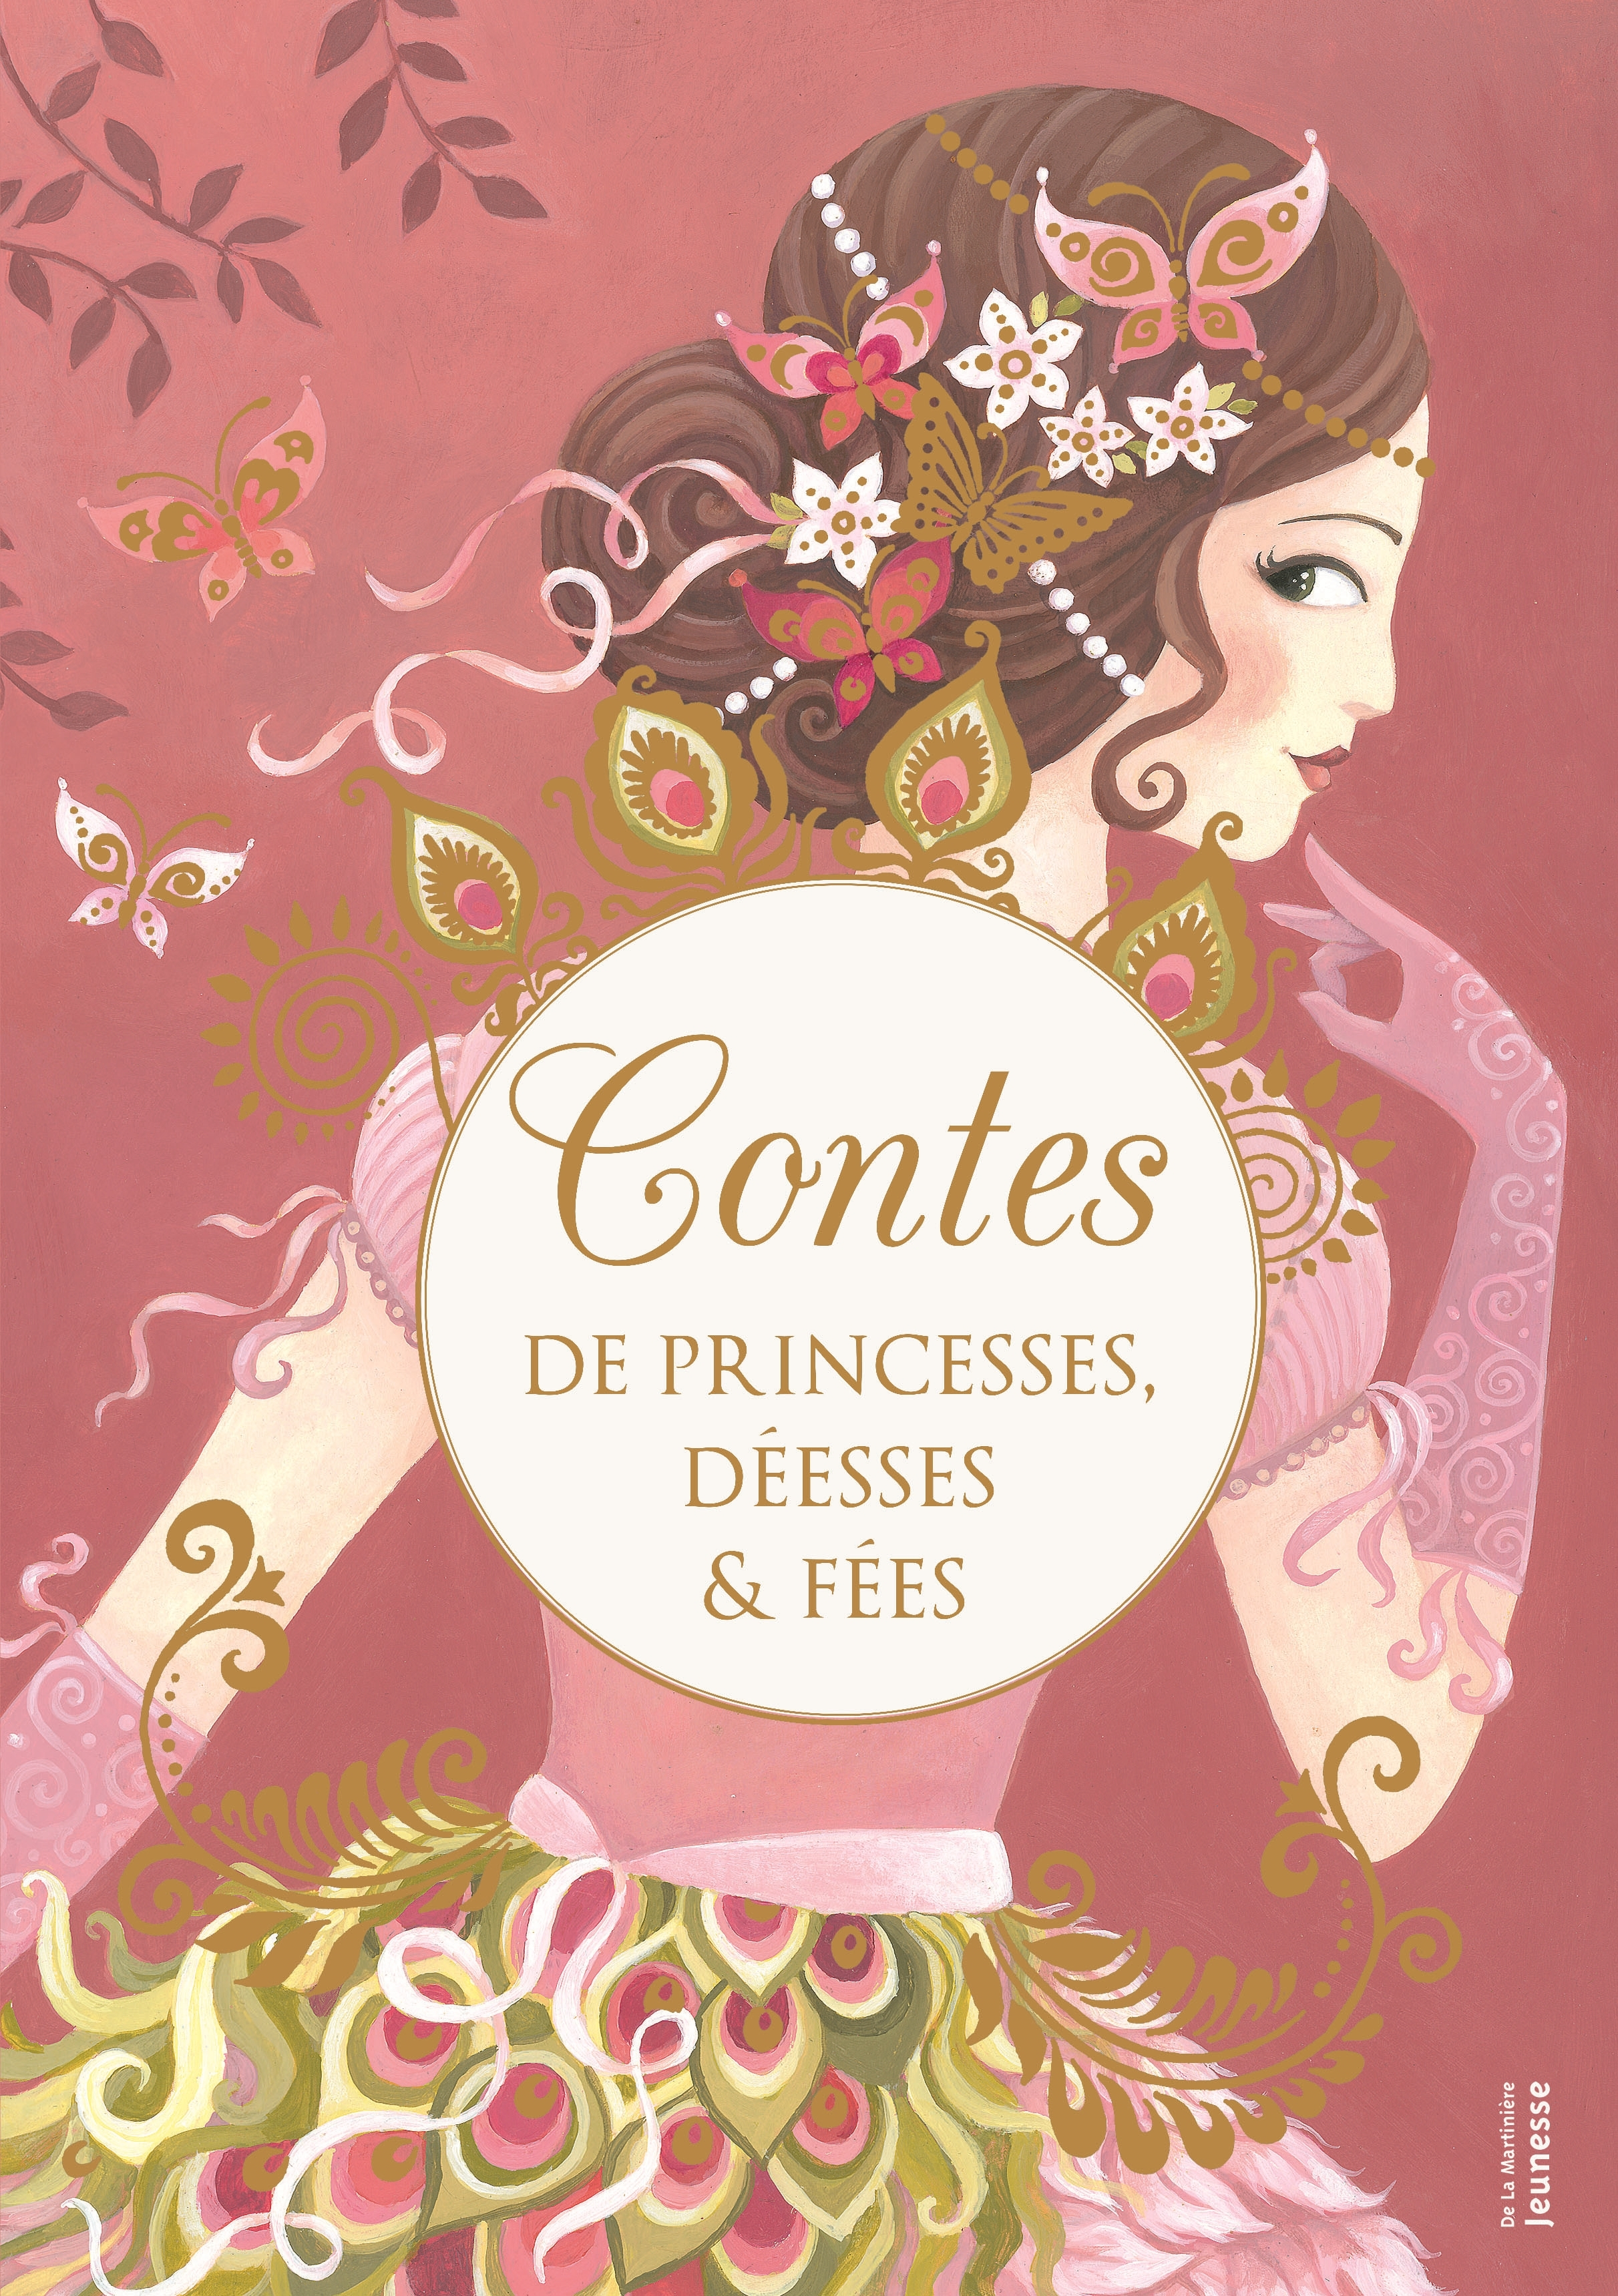 CONTES DE PRINCESSES, DEESSES & FEES